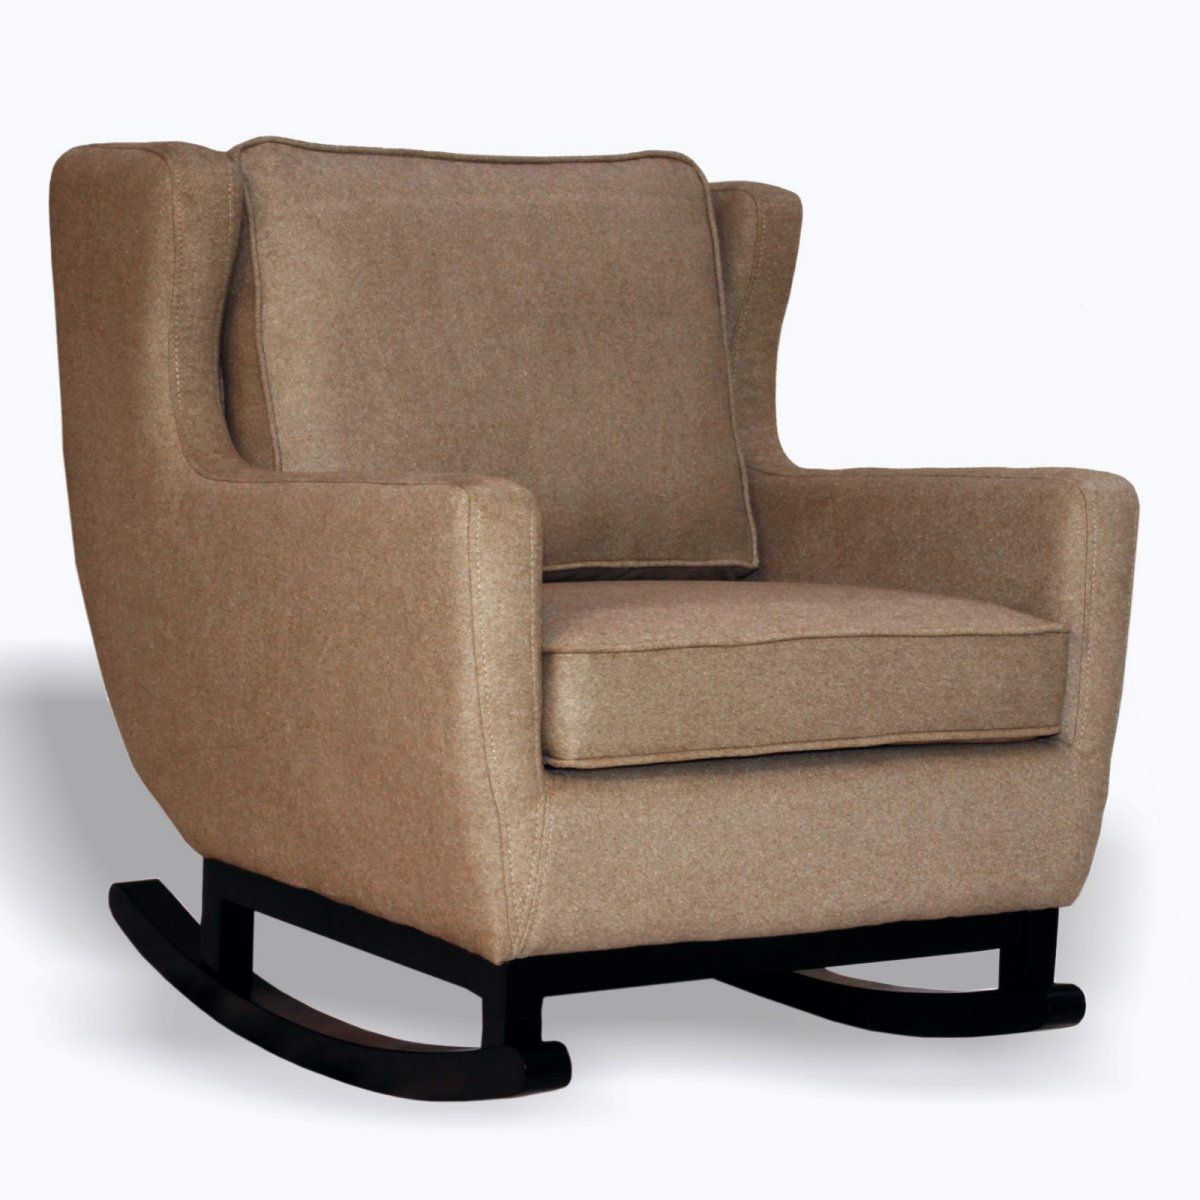 Armen Upholstered Rocking Chair Espresso Chairs At Hayneedle